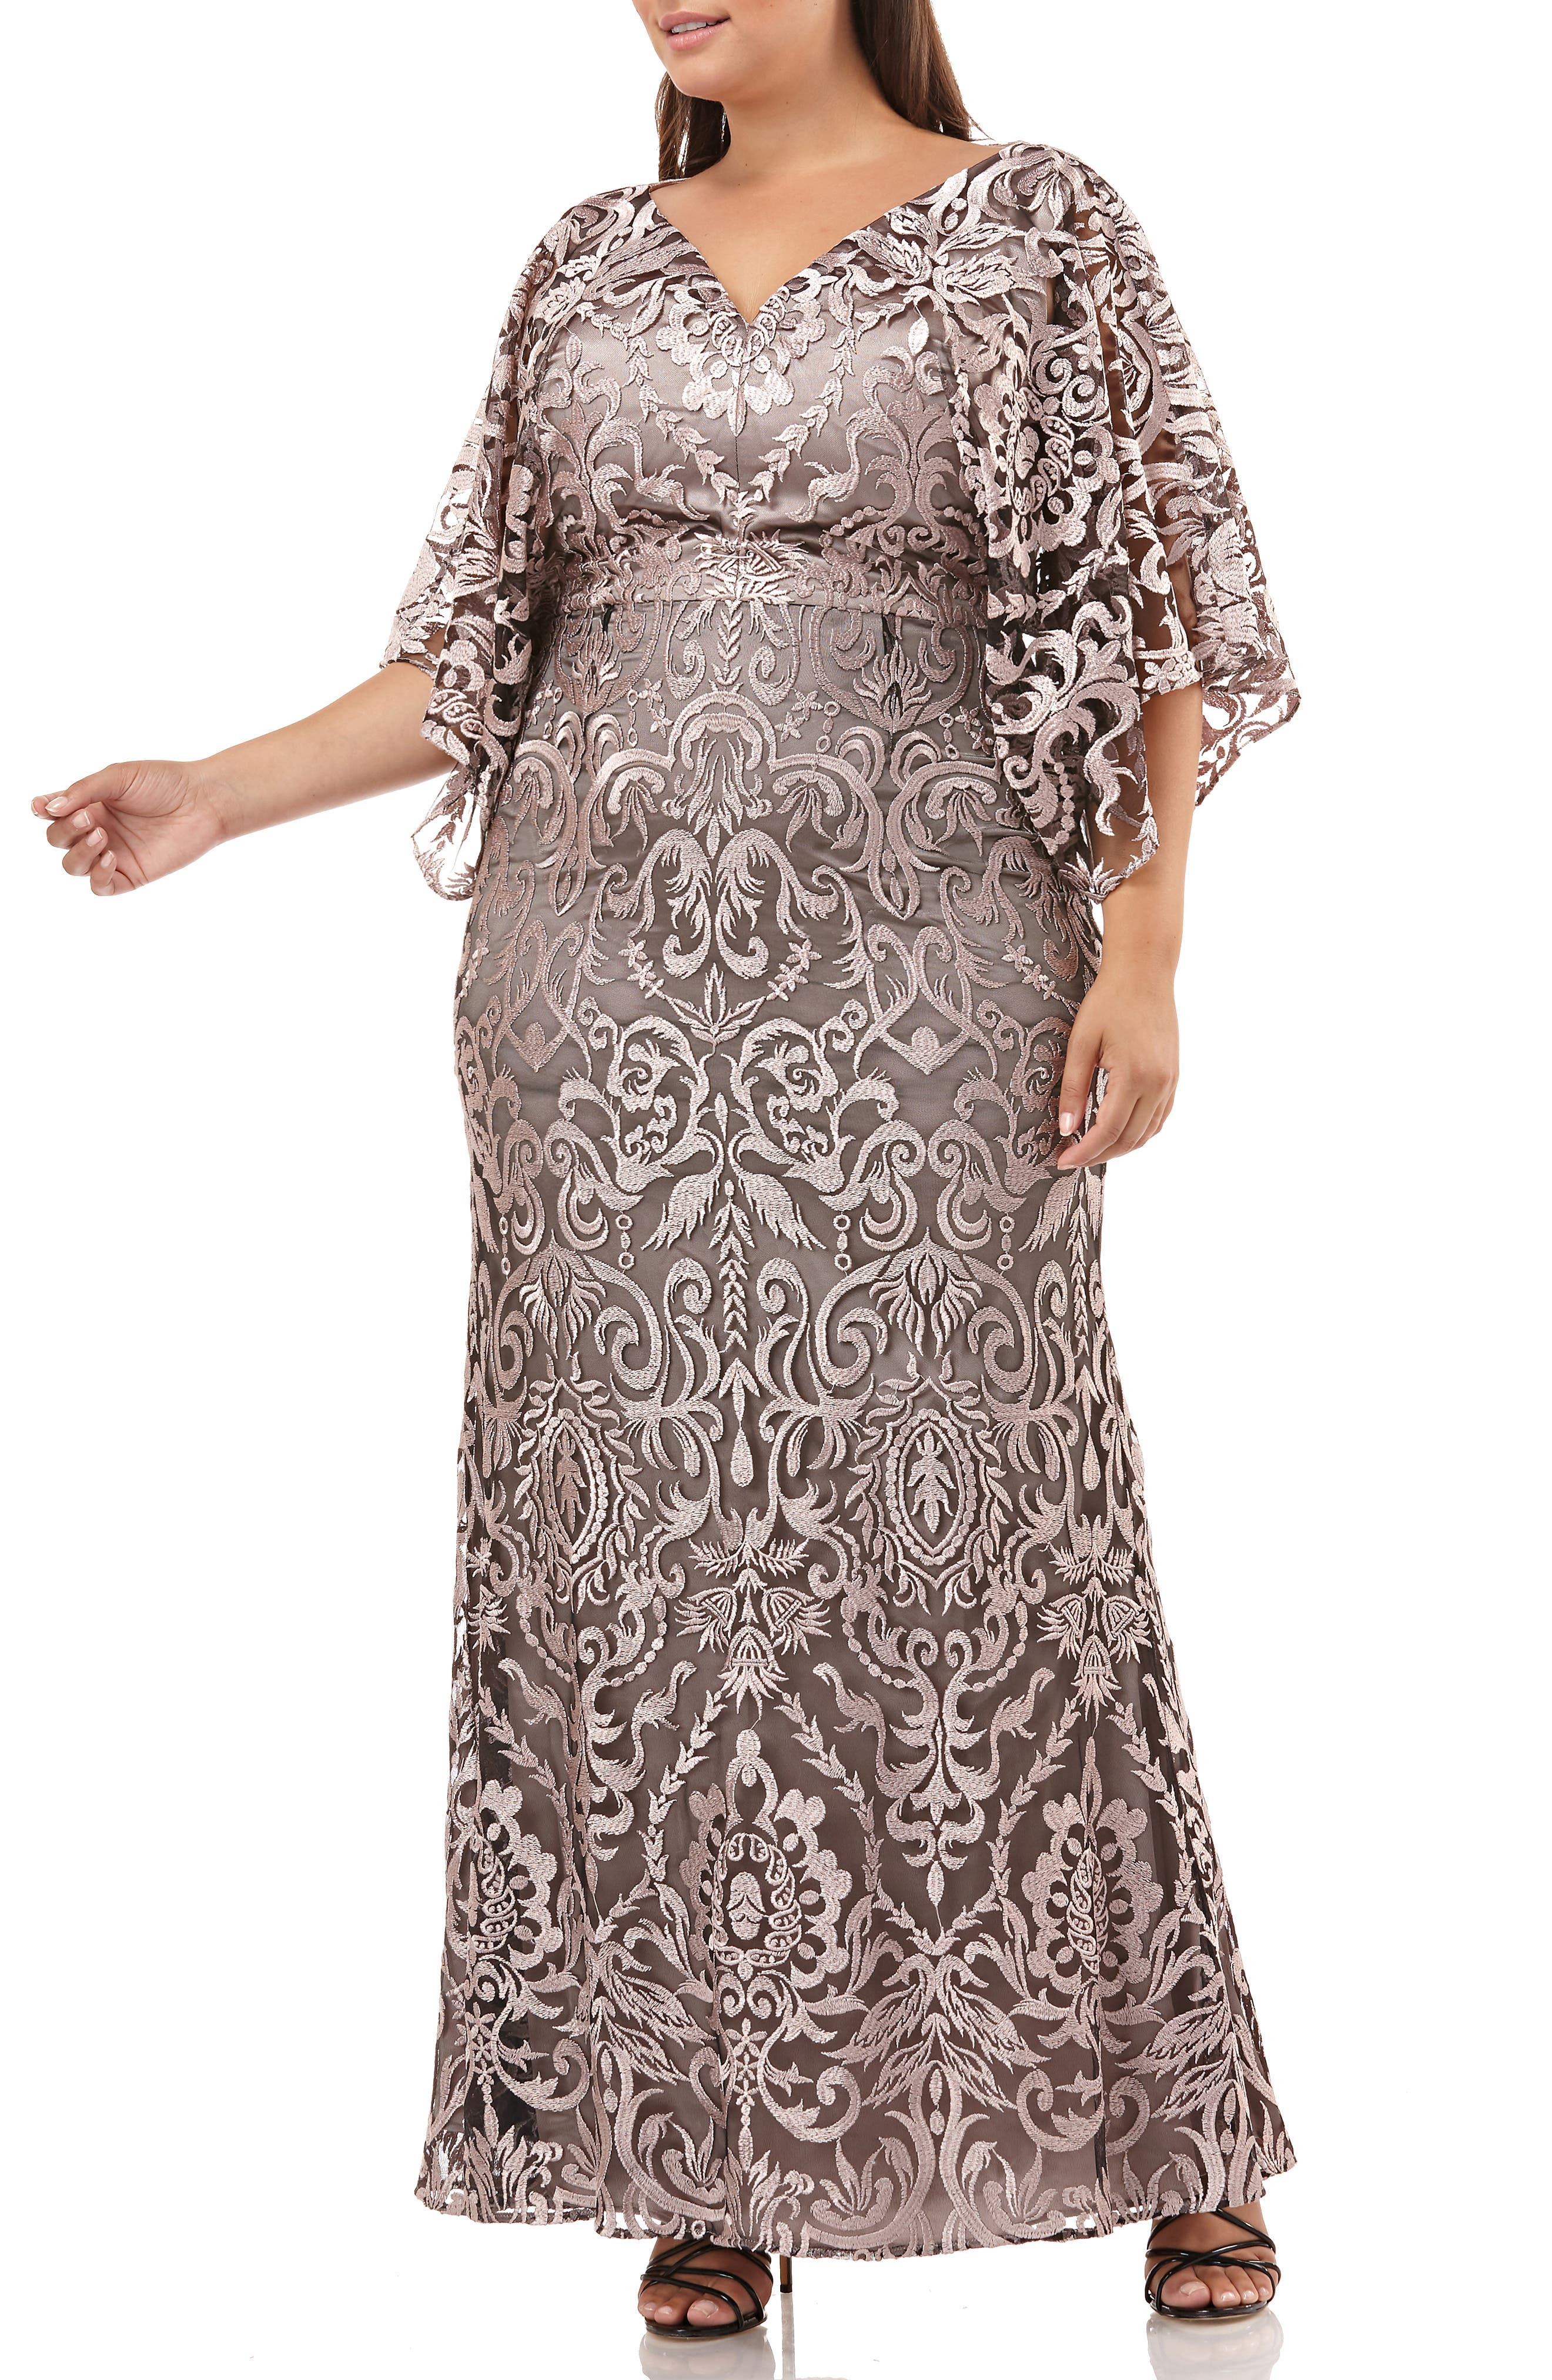 Plus Size Js Collections Embroidered Lace Evening Dress, Pink